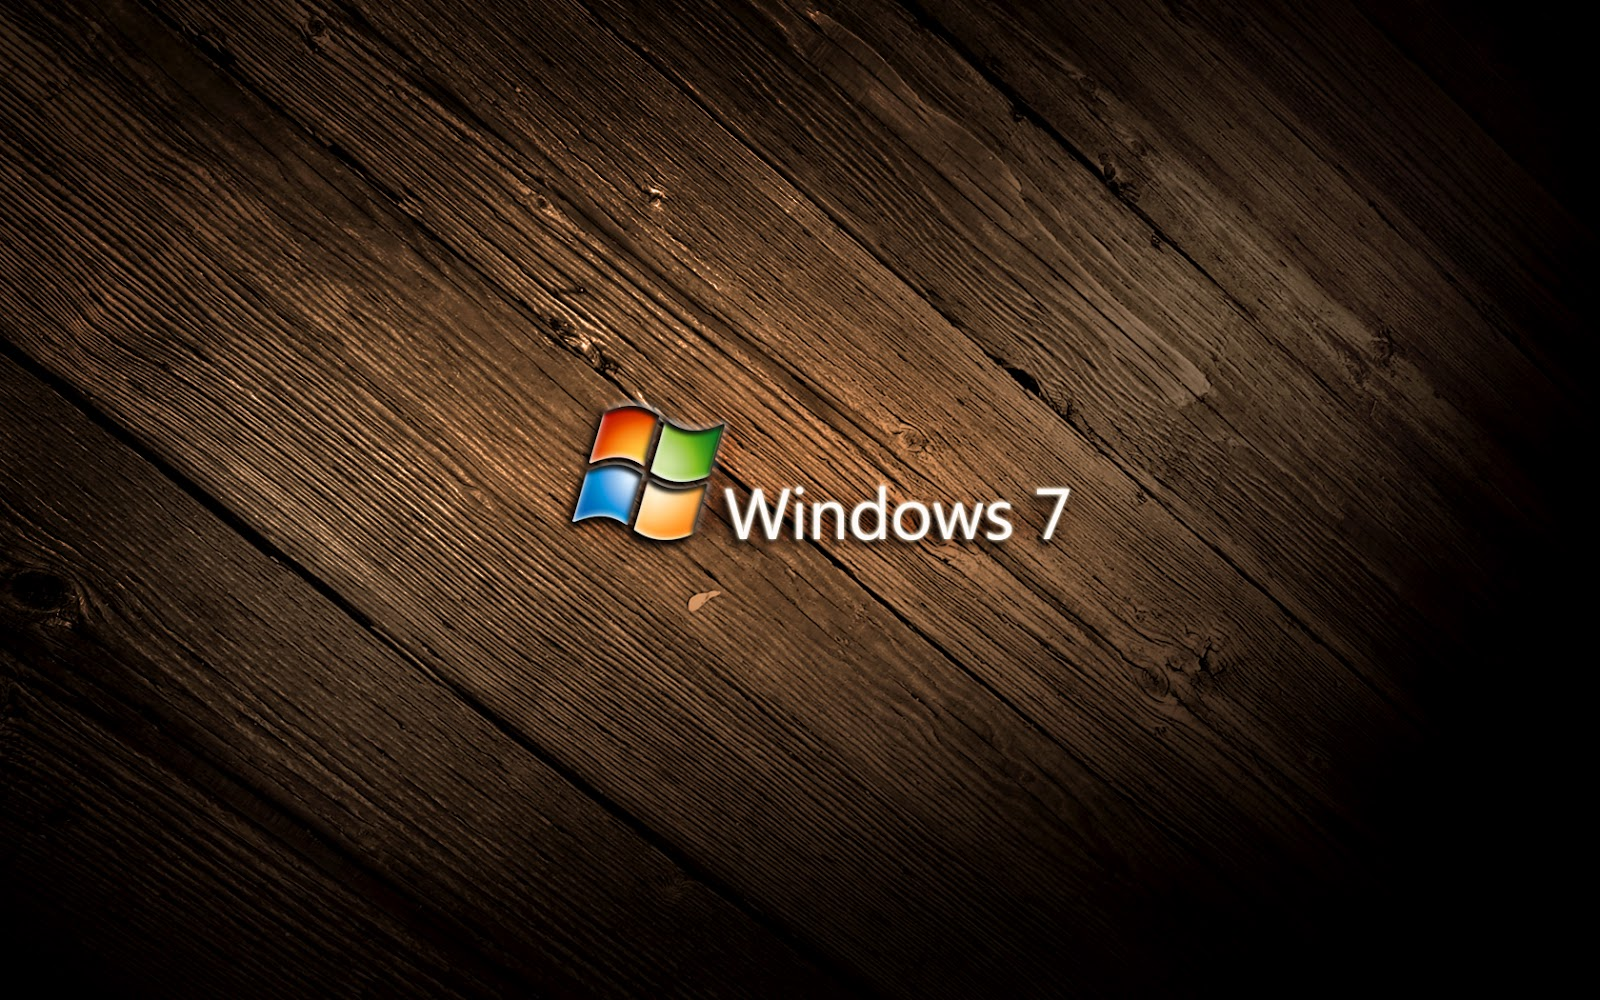 Labels Windows 7 Windows 7 HD Wallpapers Windows 7 Wallpapers 1600x1000